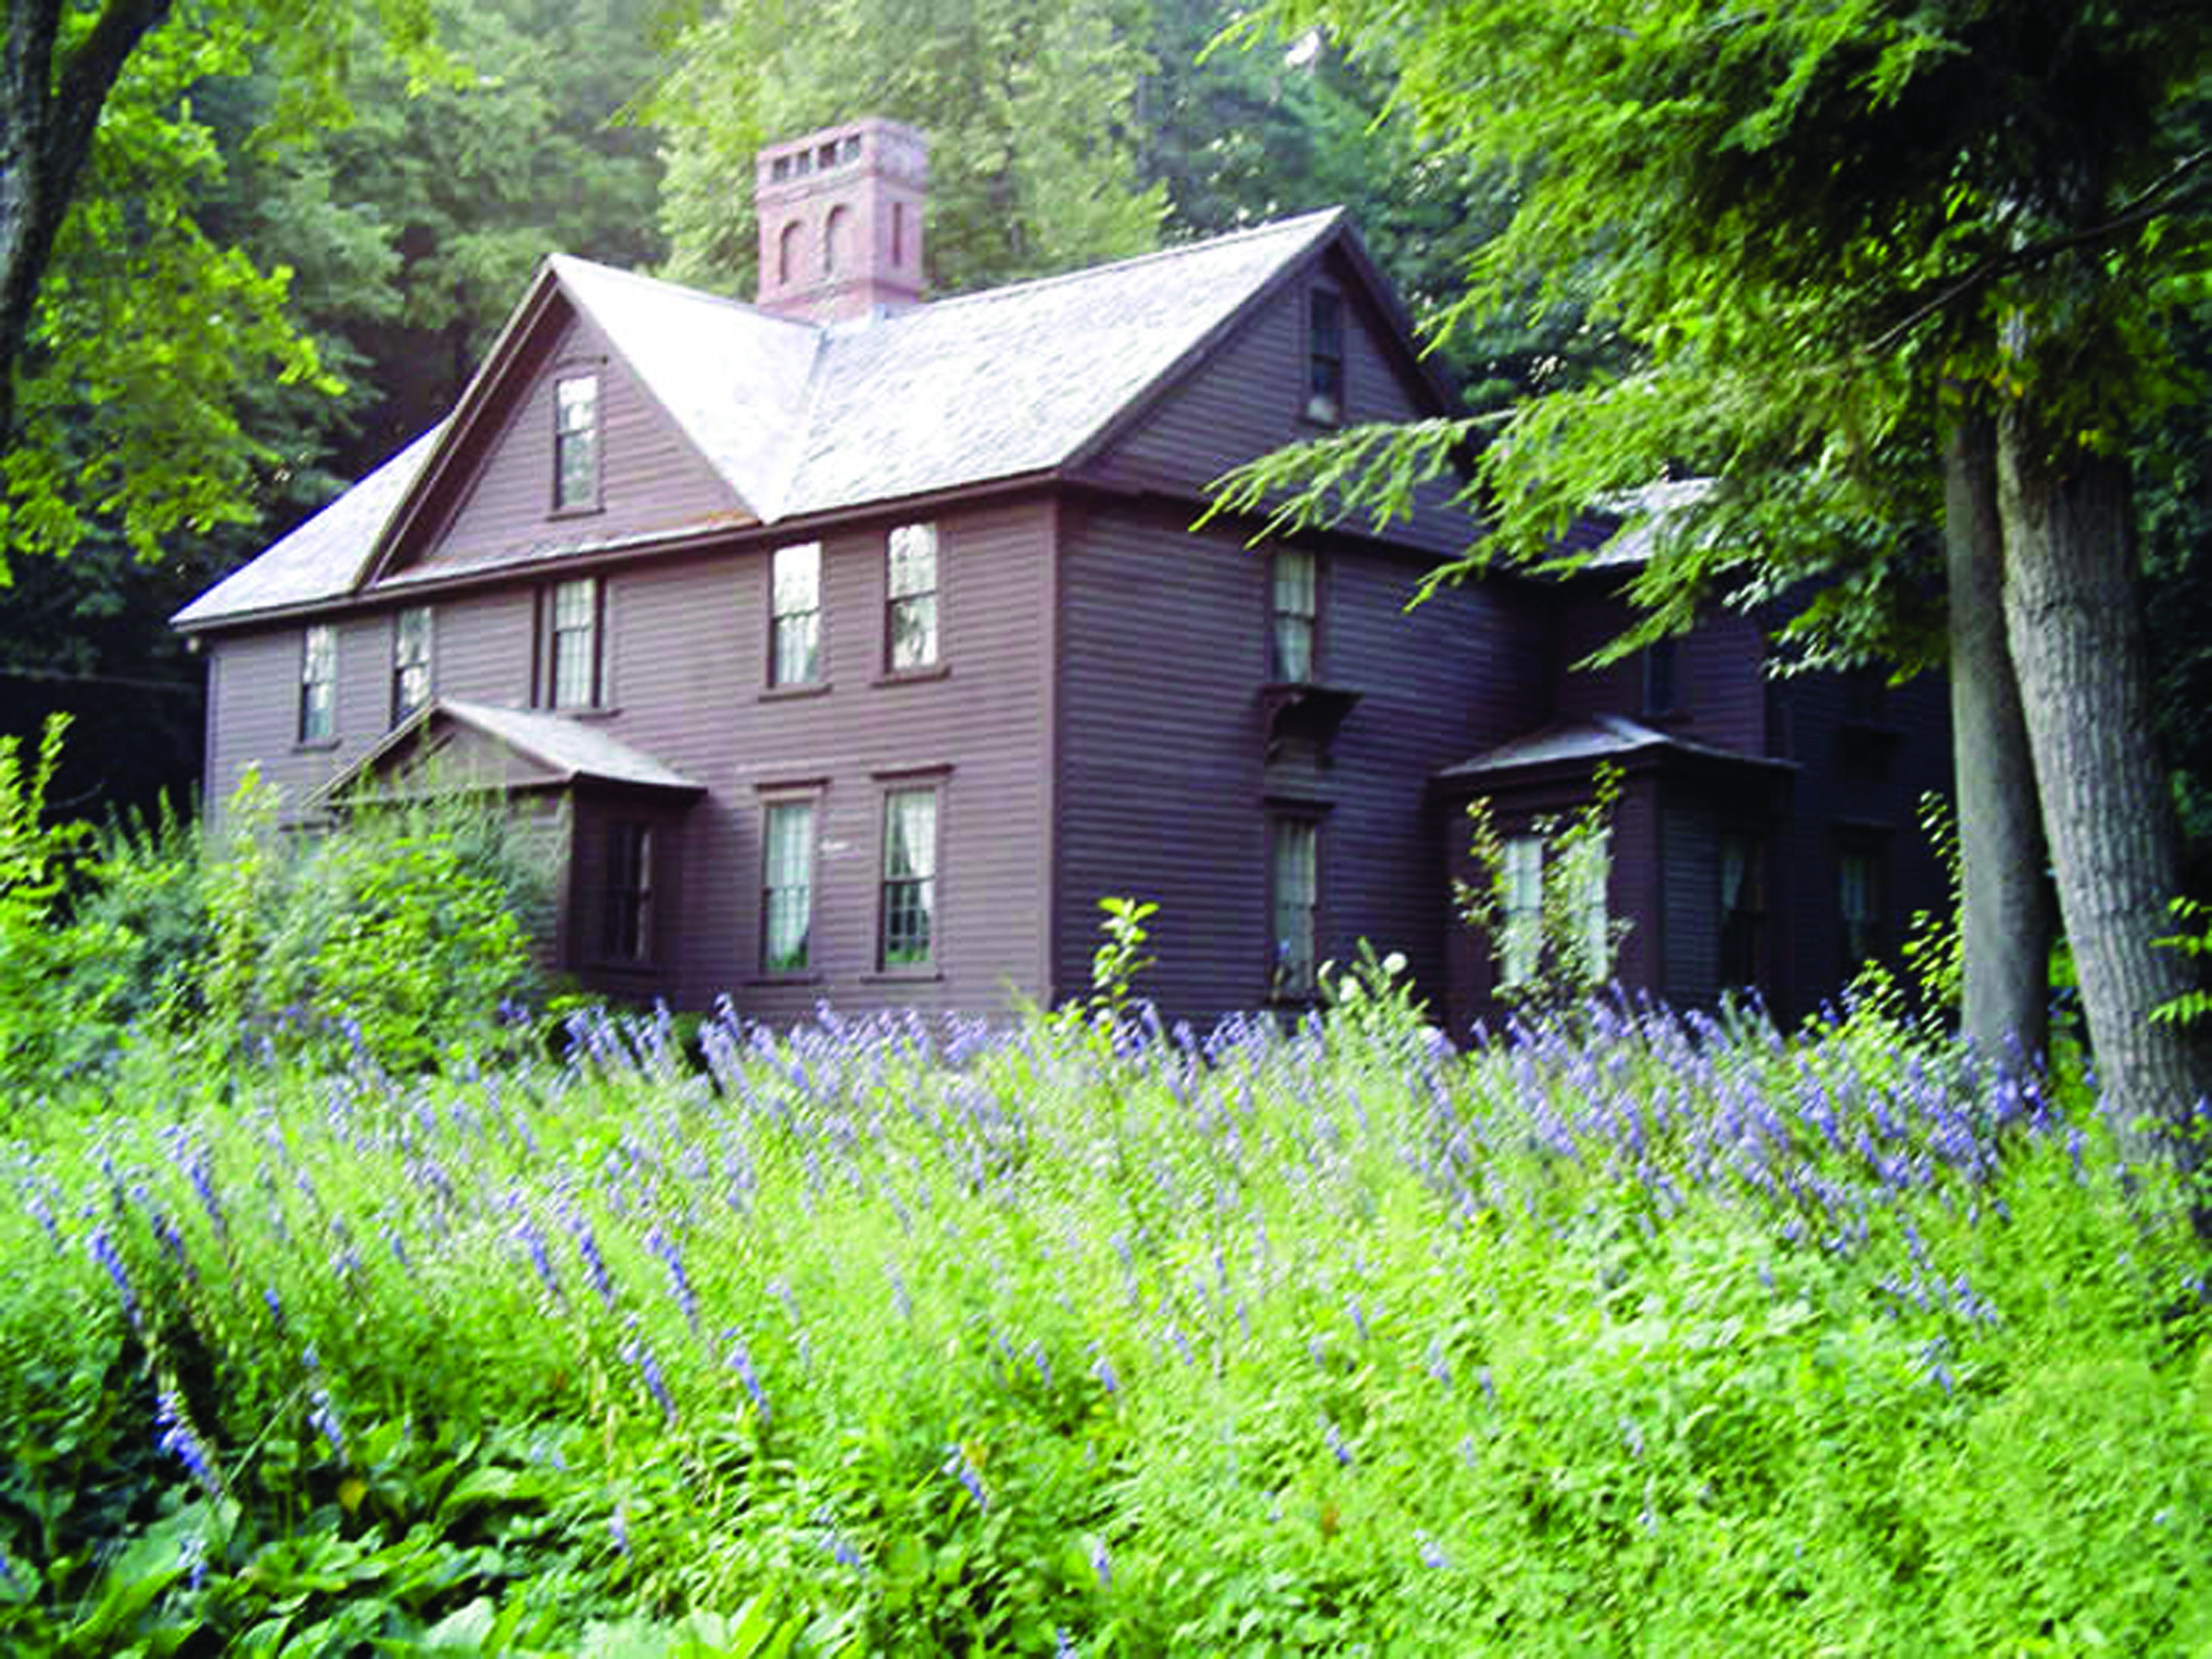 The Alcott Home in Concord, Massachussetts